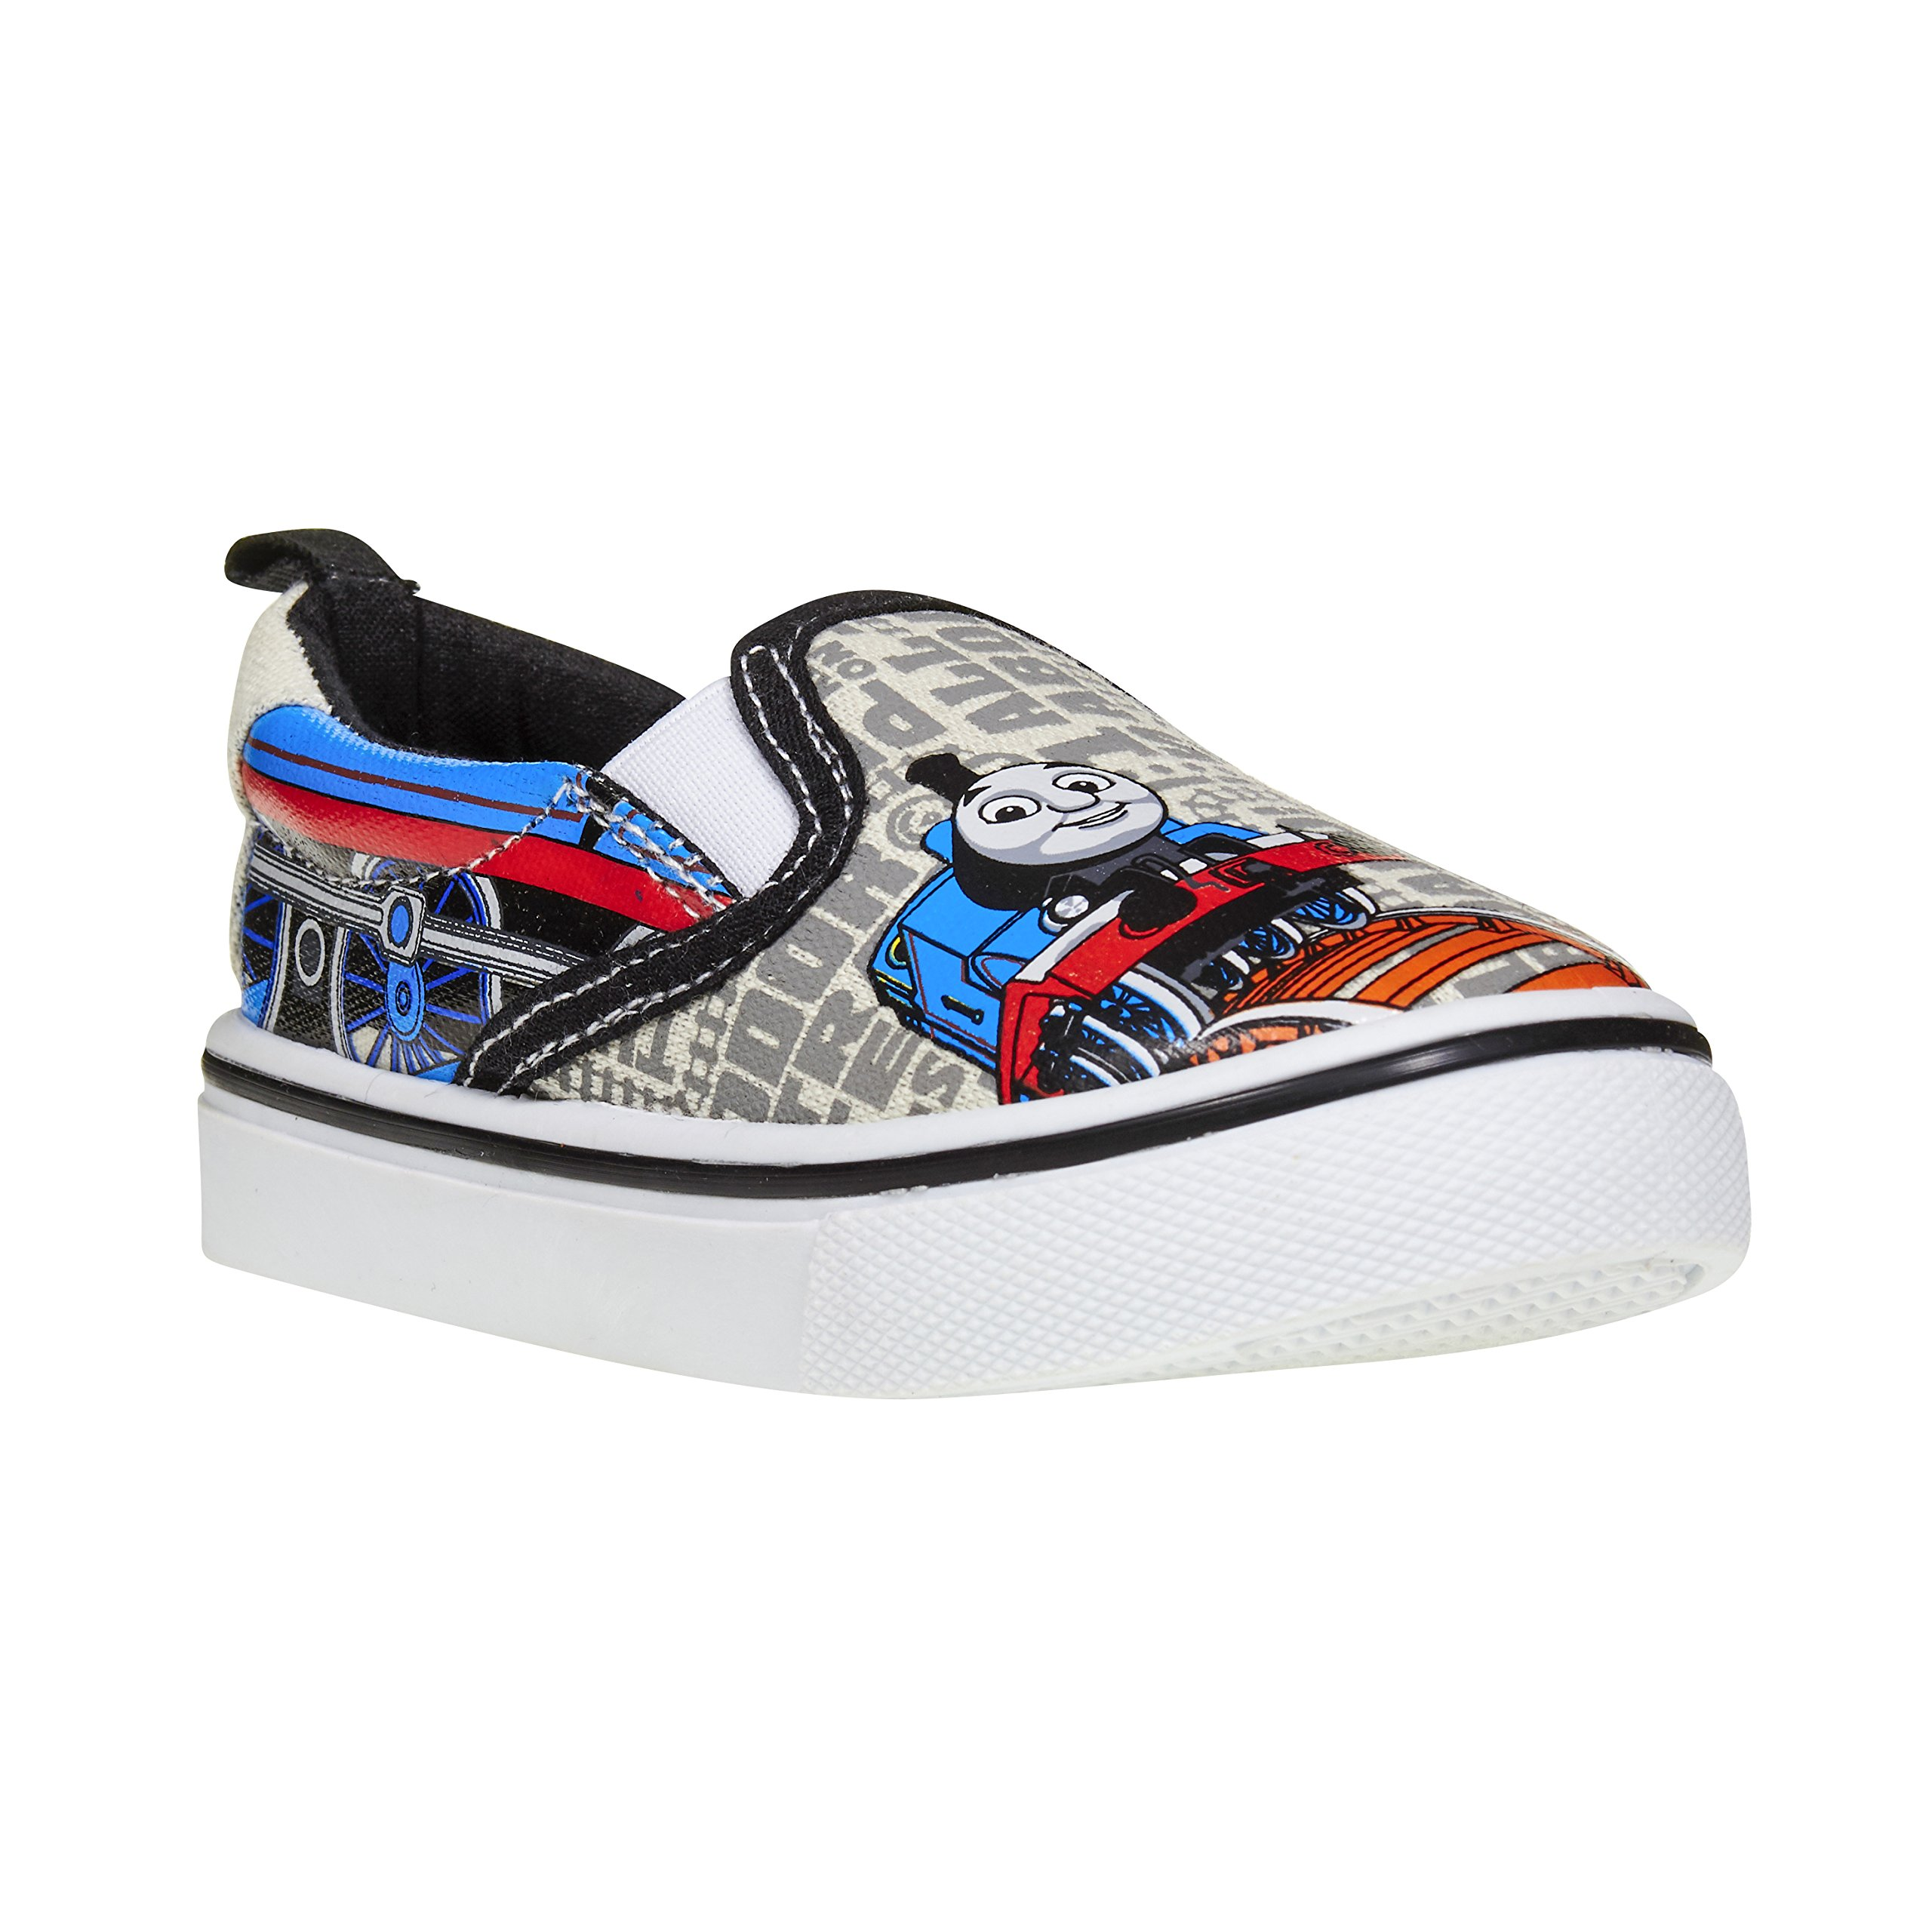 Thomas and Friends Toddler Boy Shoes; Slip-On Little Kids Character Shoes by Thomas & Friends (Image #3)